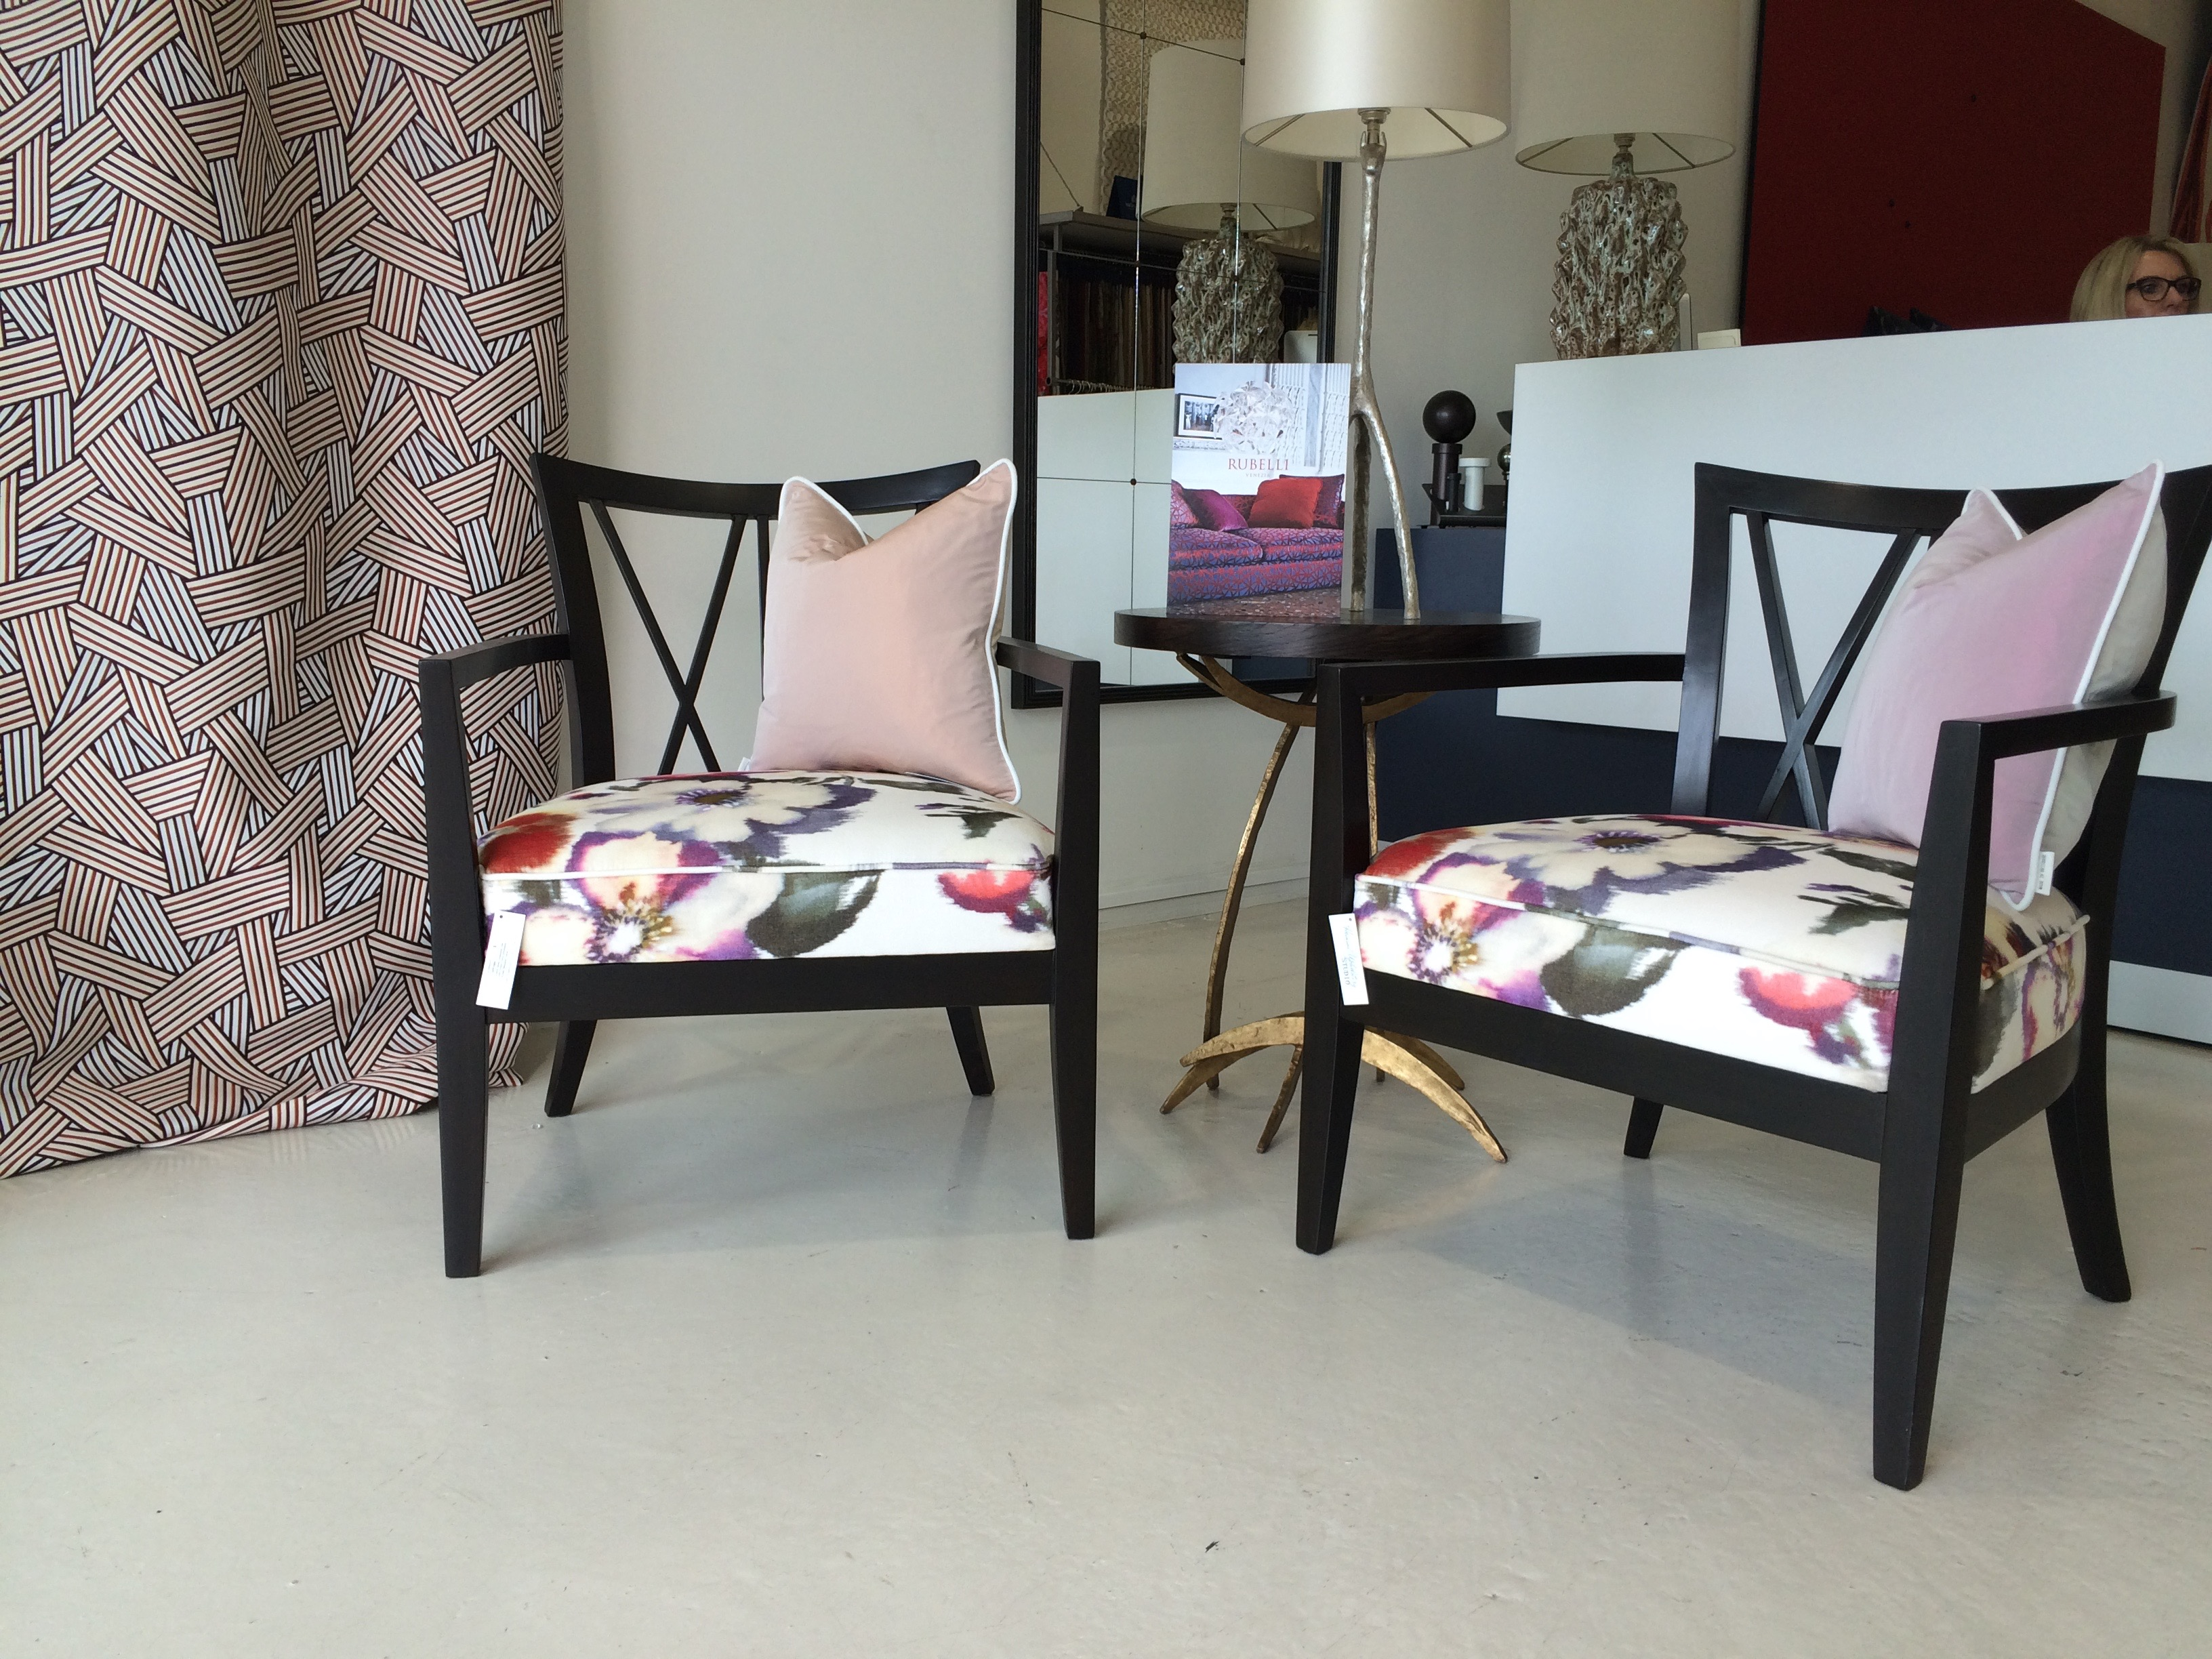 Hour glass chairs - Rubelli Fabric